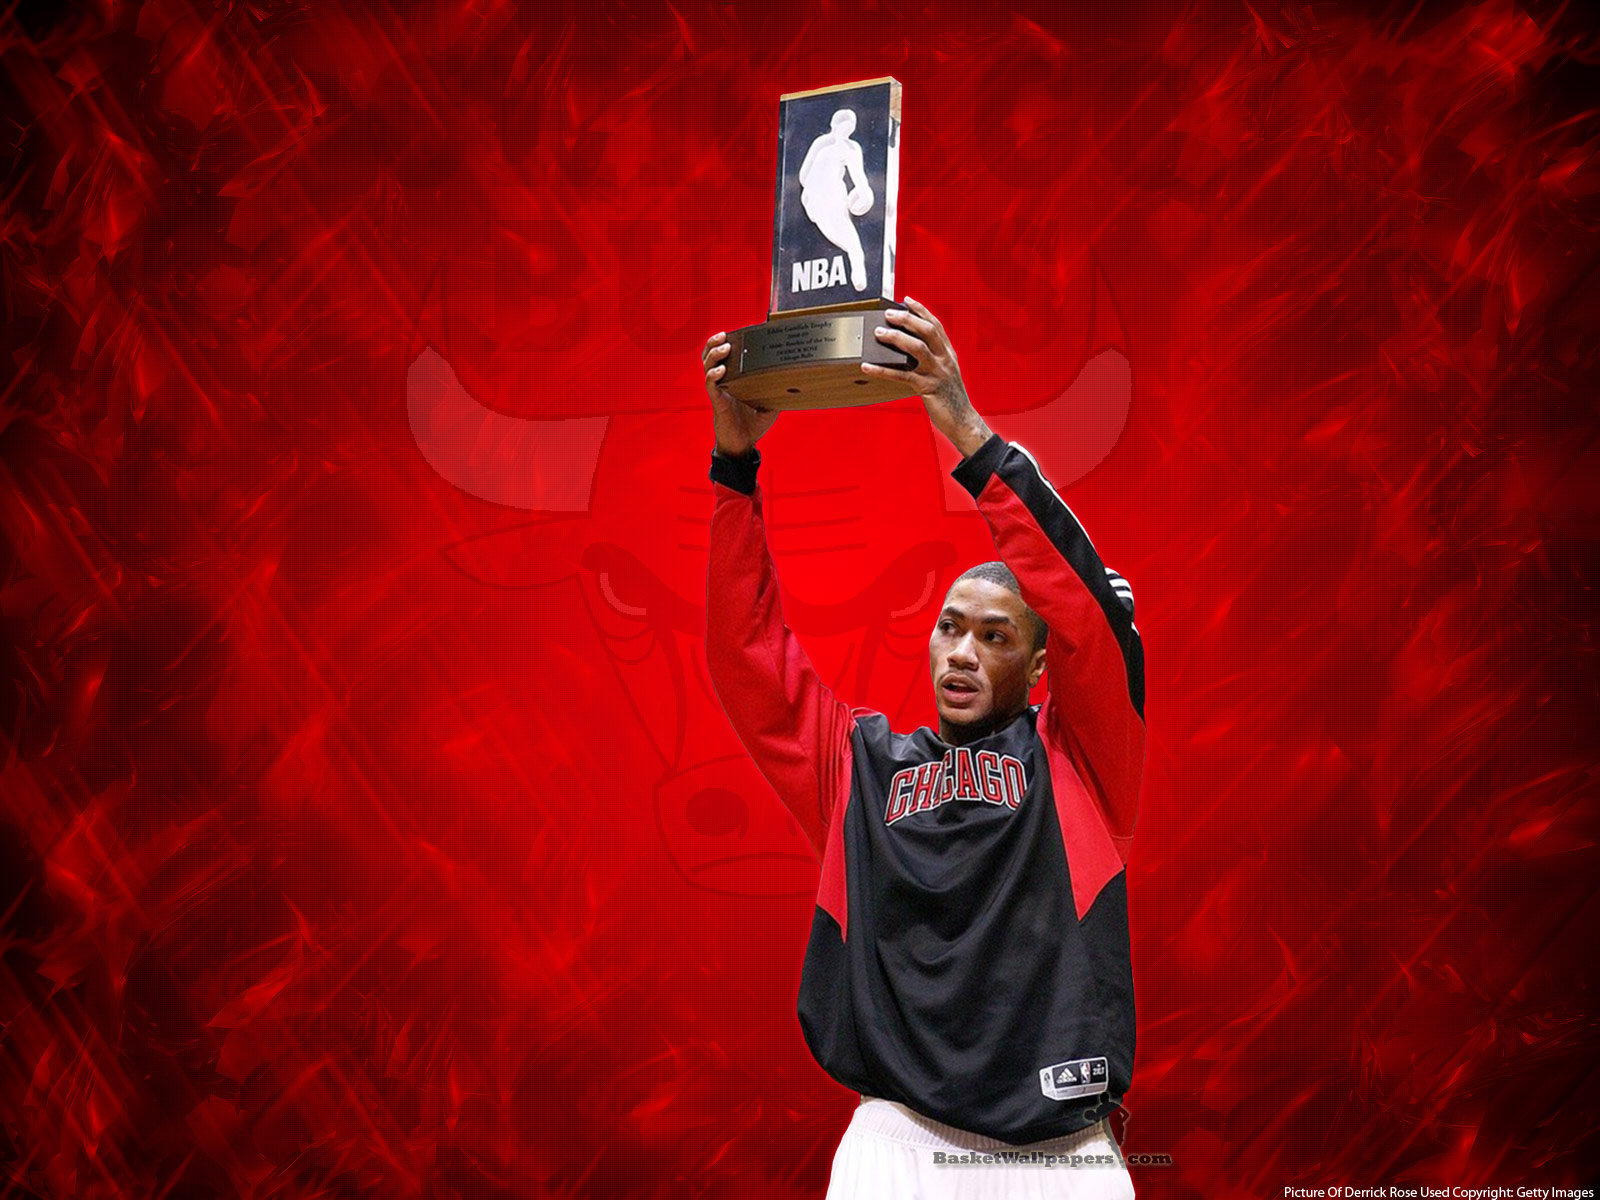 http://3.bp.blogspot.com/-18k3tm5LG54/Tw3fytXdL-I/AAAAAAAAGrI/mj1rrdi2nSo/s1600/Derrick_Rose_NBA_Rookie_of_the_Year_Wallpaper.jpg